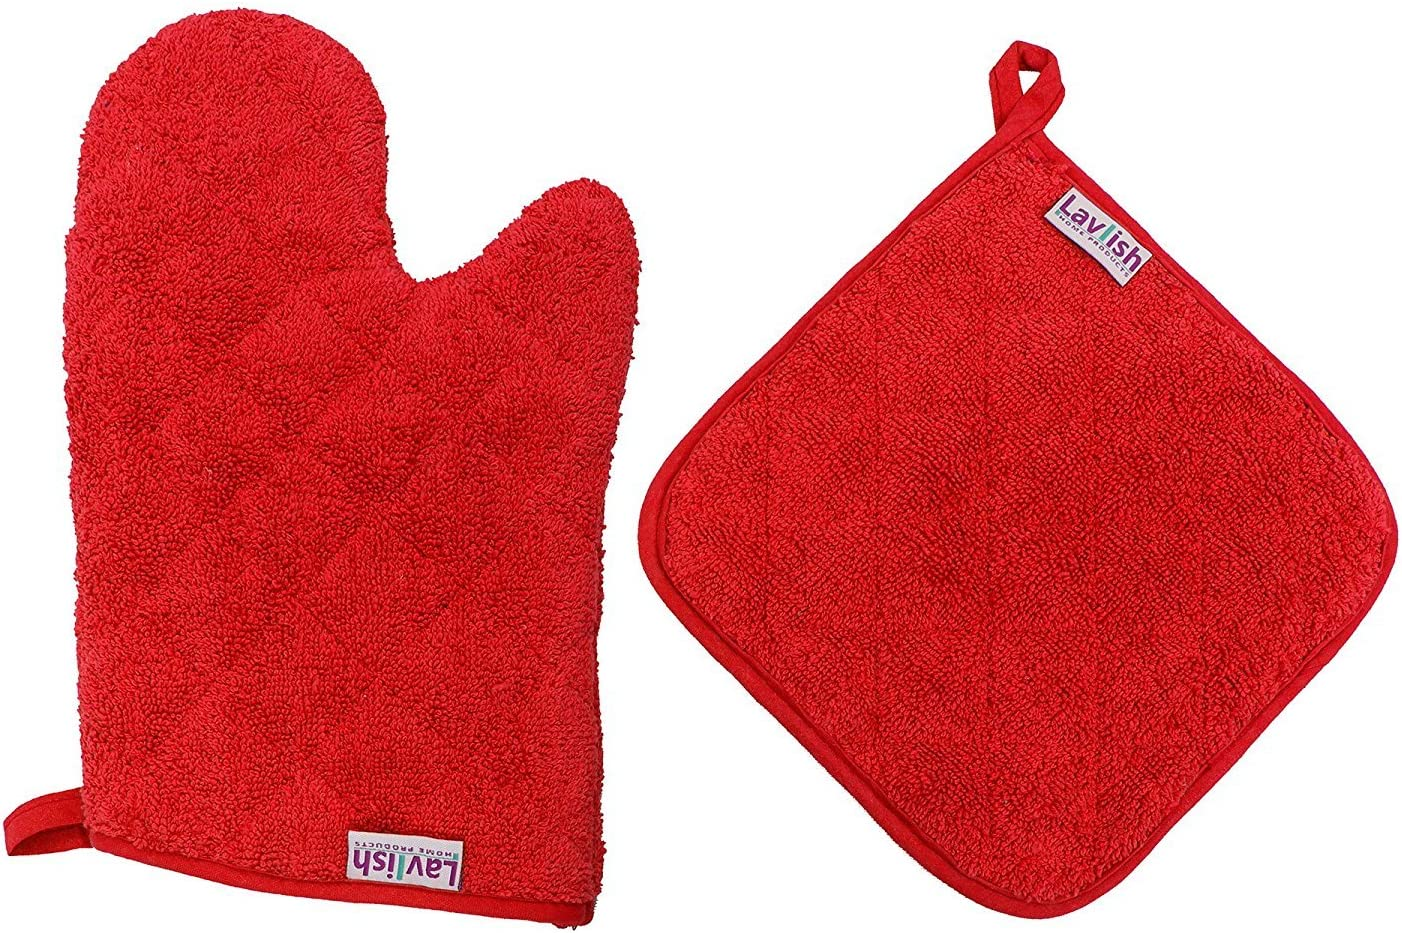 Lavlish Oven Mitt & Pot Holder Set 100% Cotton, Red